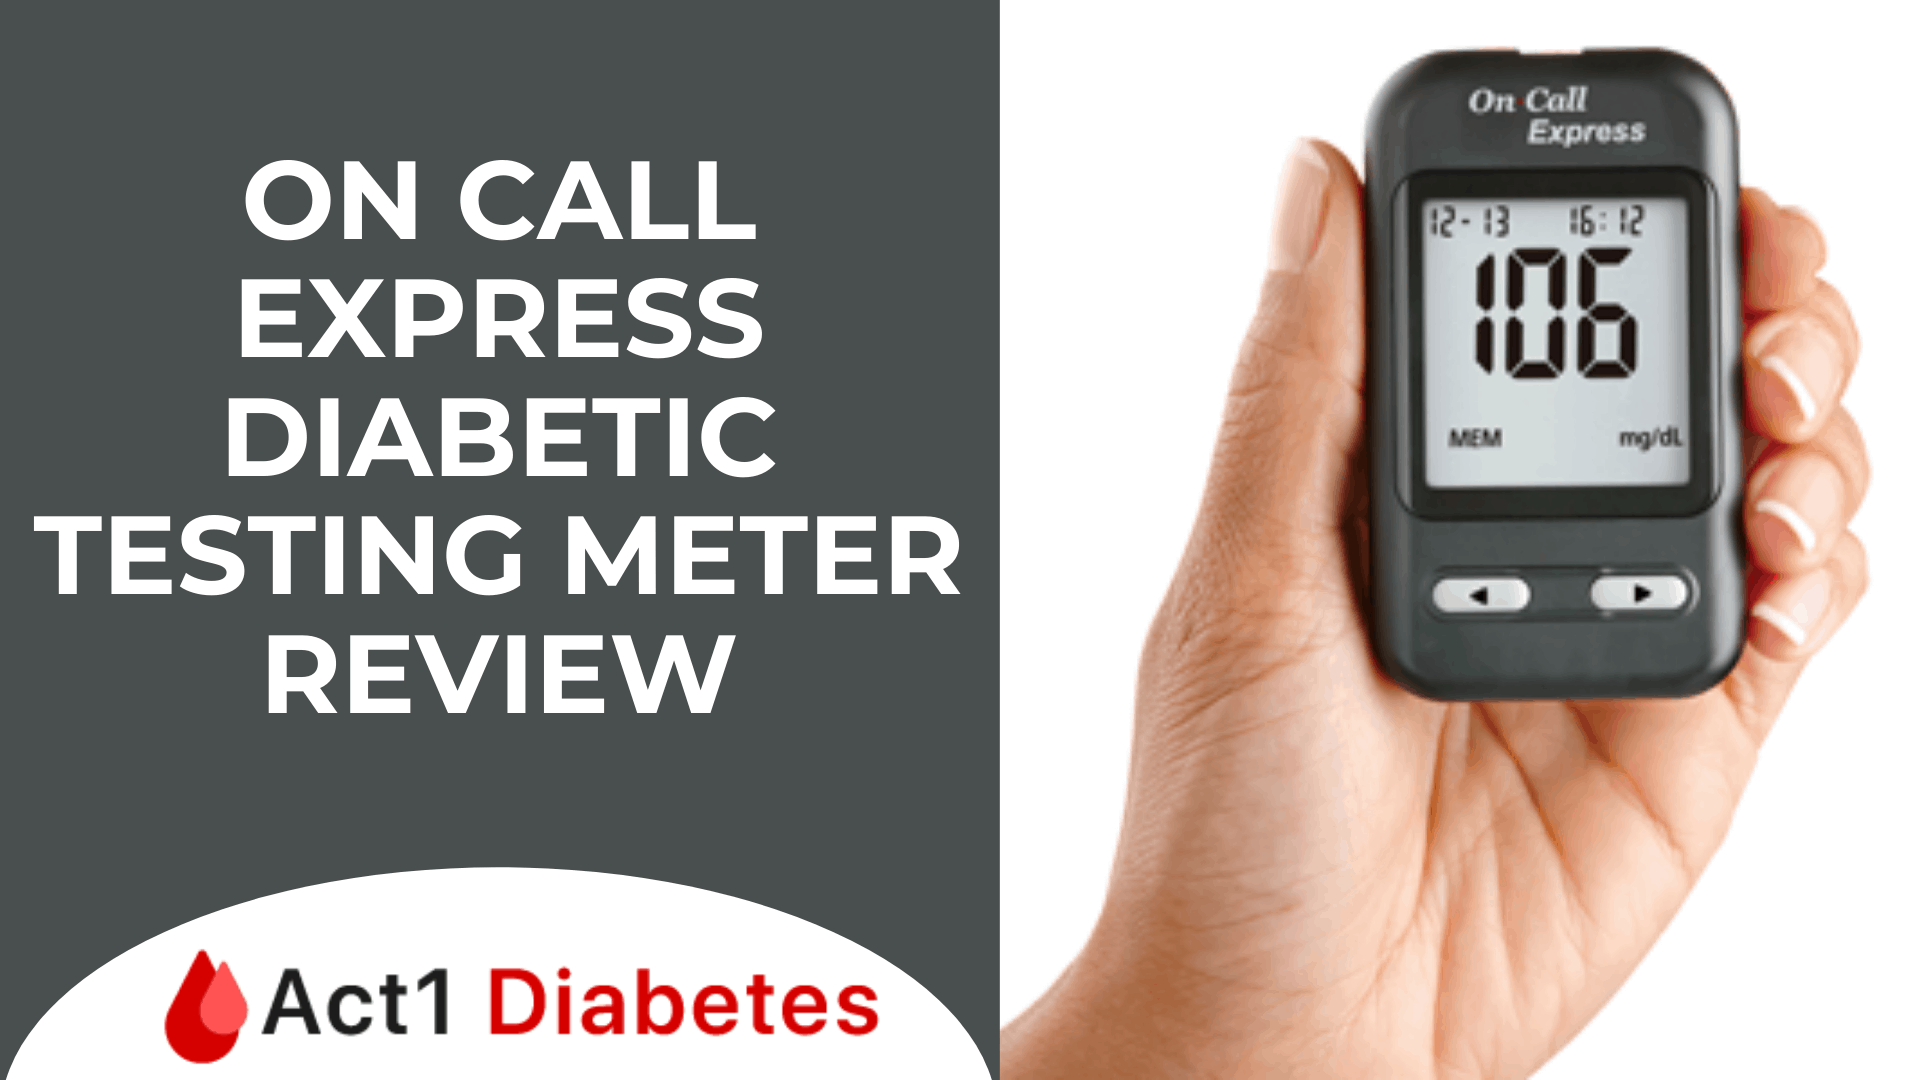 On Call Express Diabetic Testing Meter Review